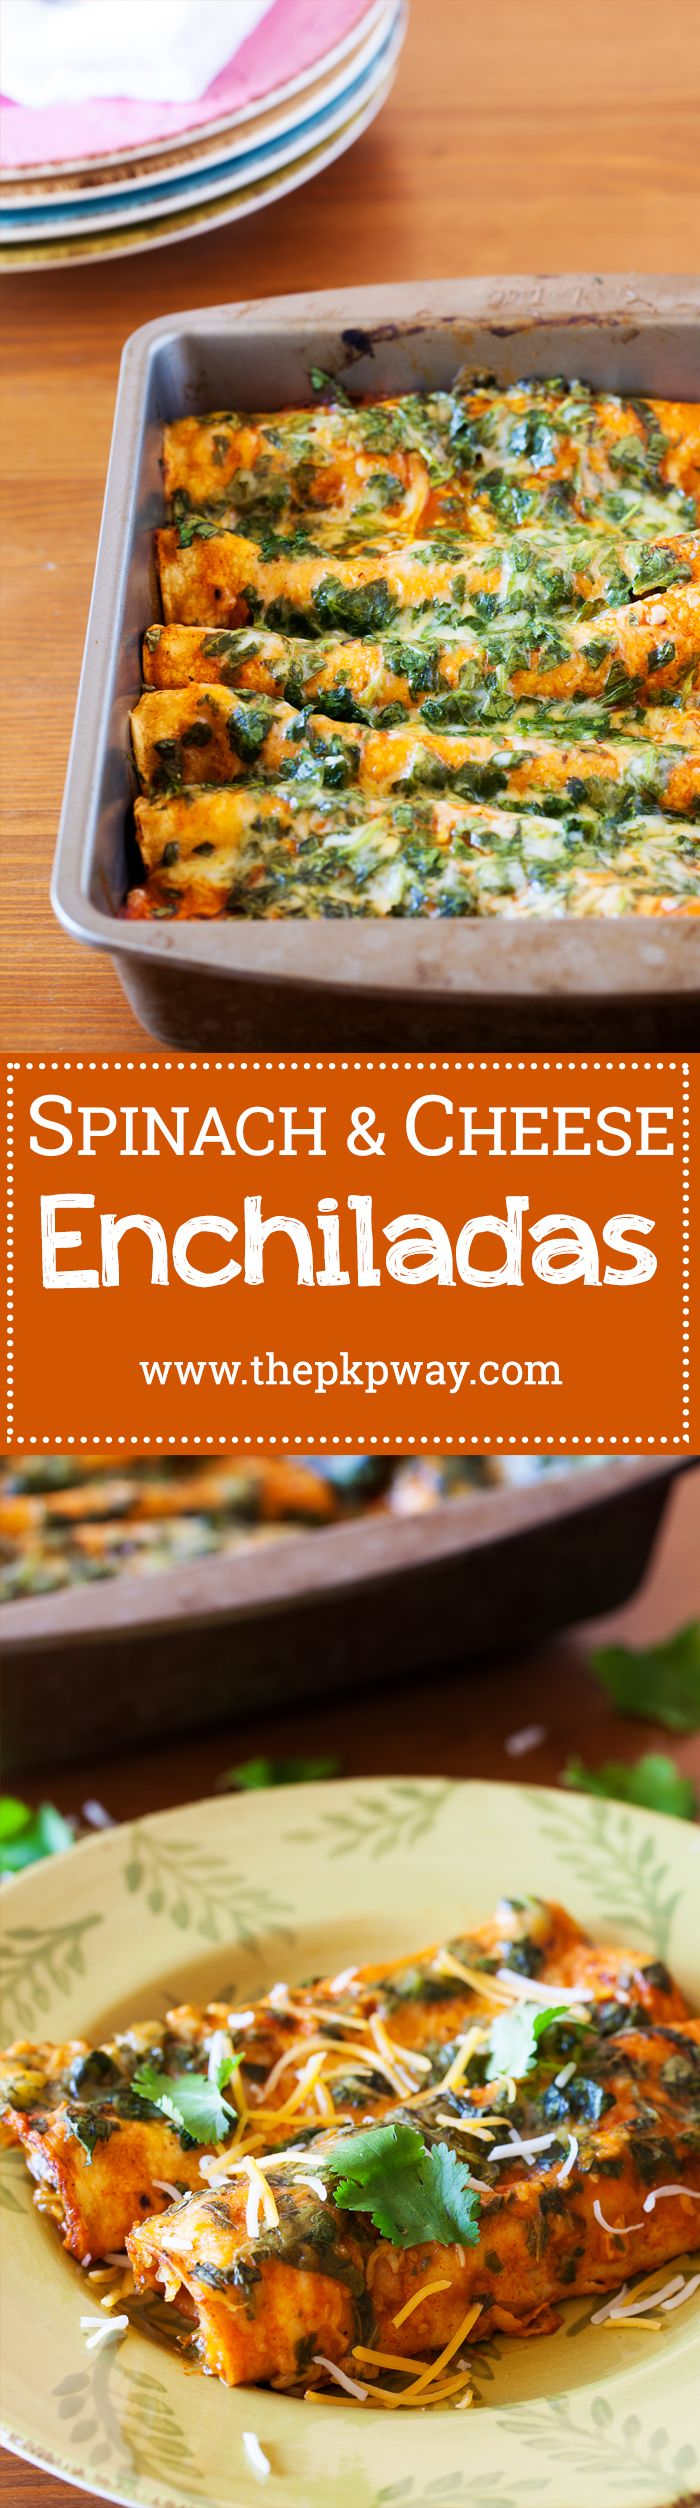 Spinach and cheese  enchiladas are a healthy twist on a Mexican favorite. Spinach and cheese filling wrapped in a corn tortilla and doused with a tangy enchilada